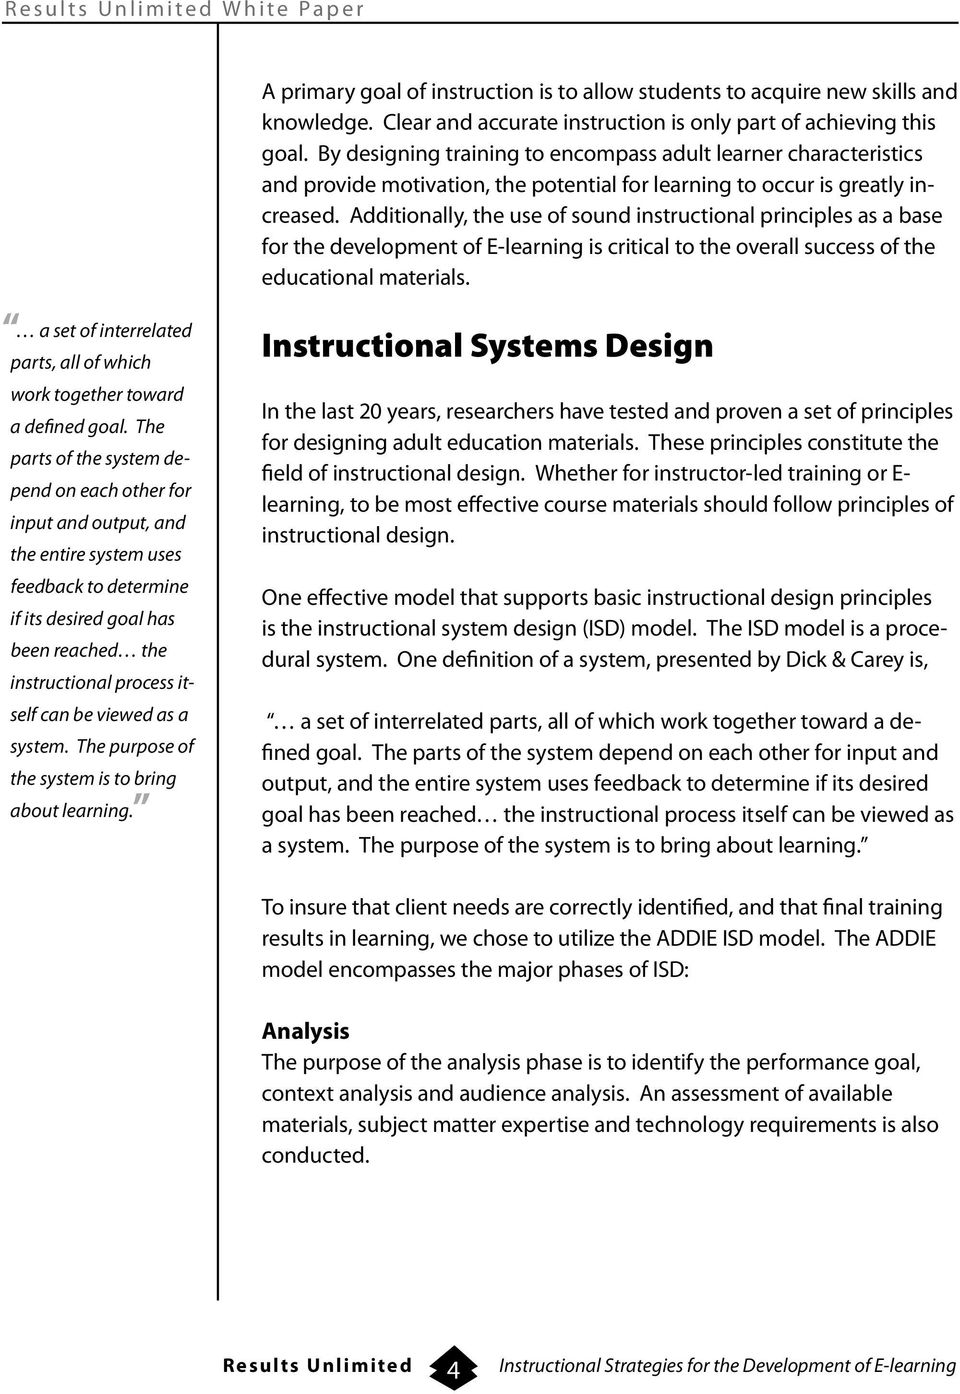 Results Unlimited White Paper Instructional Strategies For The Development Of E Learning Pdf Free Download